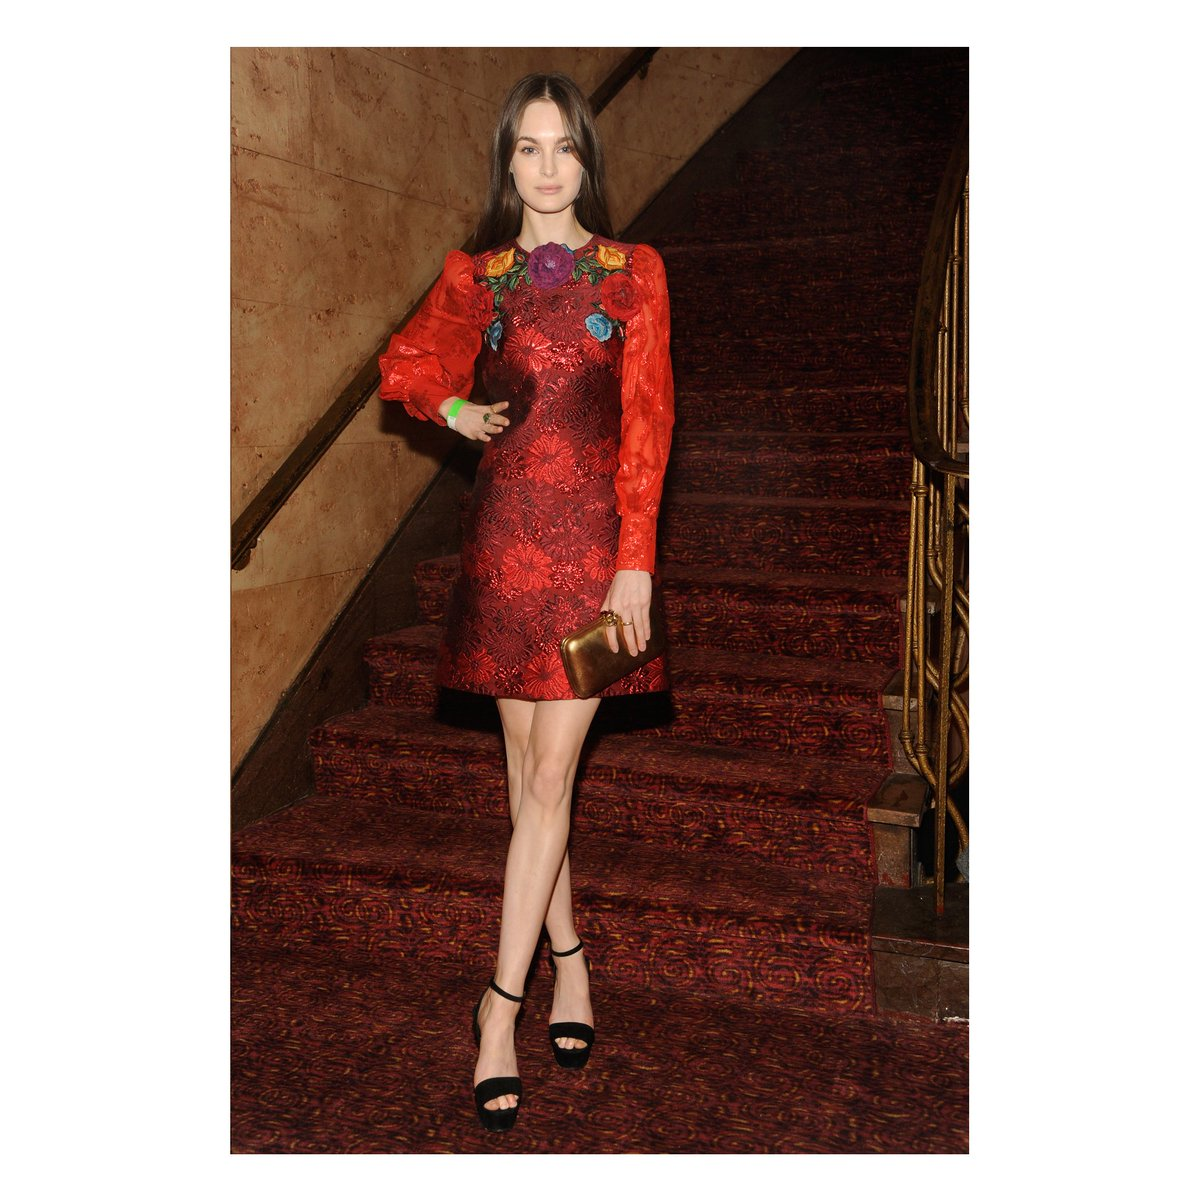 926b0a6be59 seen at gucci hosted screening of florenceandthemachines film theodyssey  liuwen in guccicruise16 dress